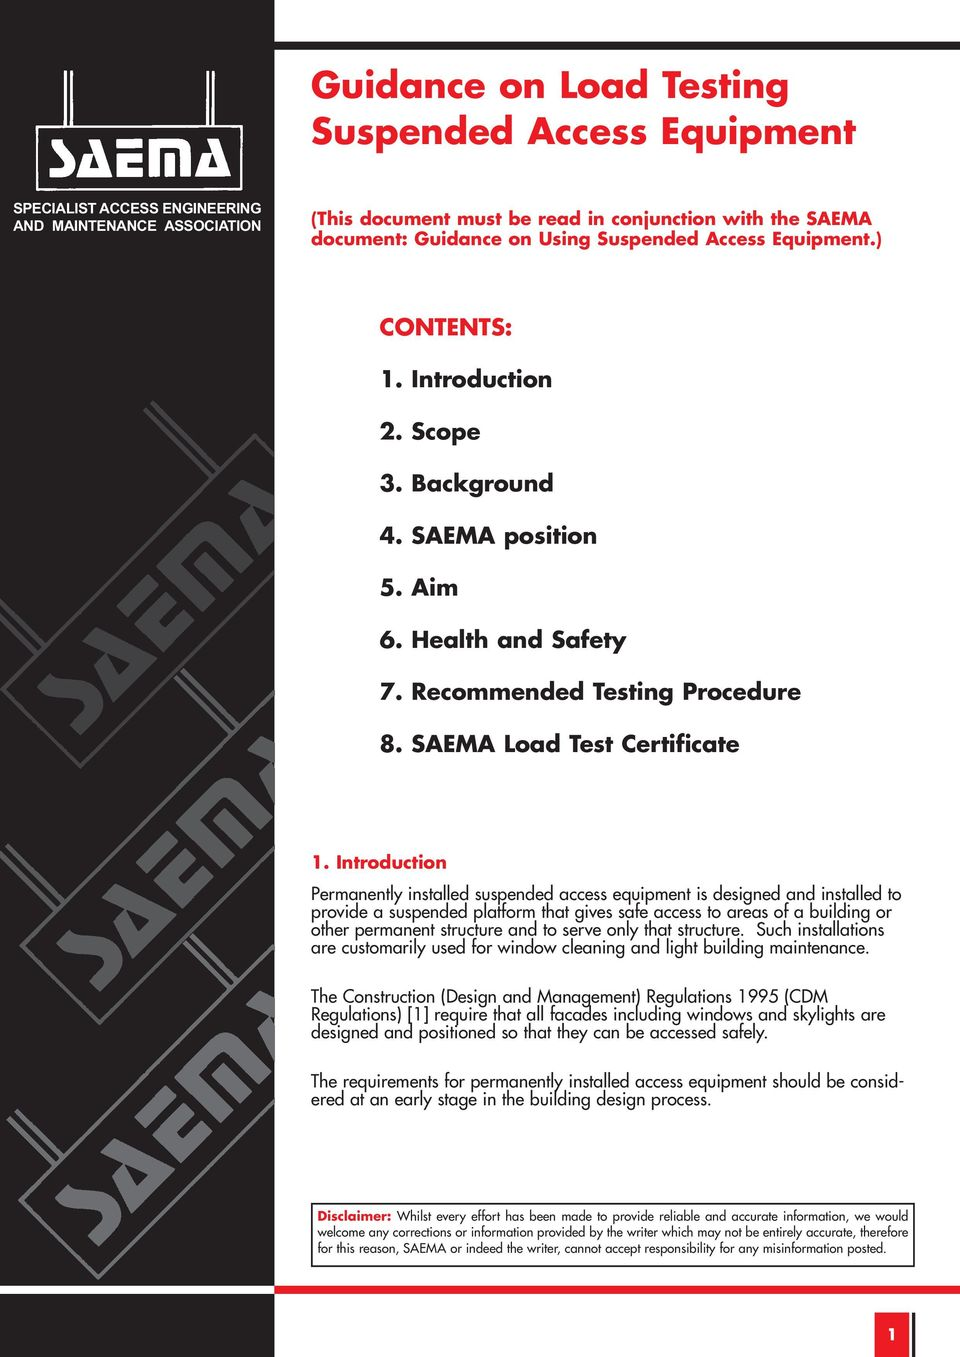 Guidance on Load Testing Suspended Access Equipment - PDF